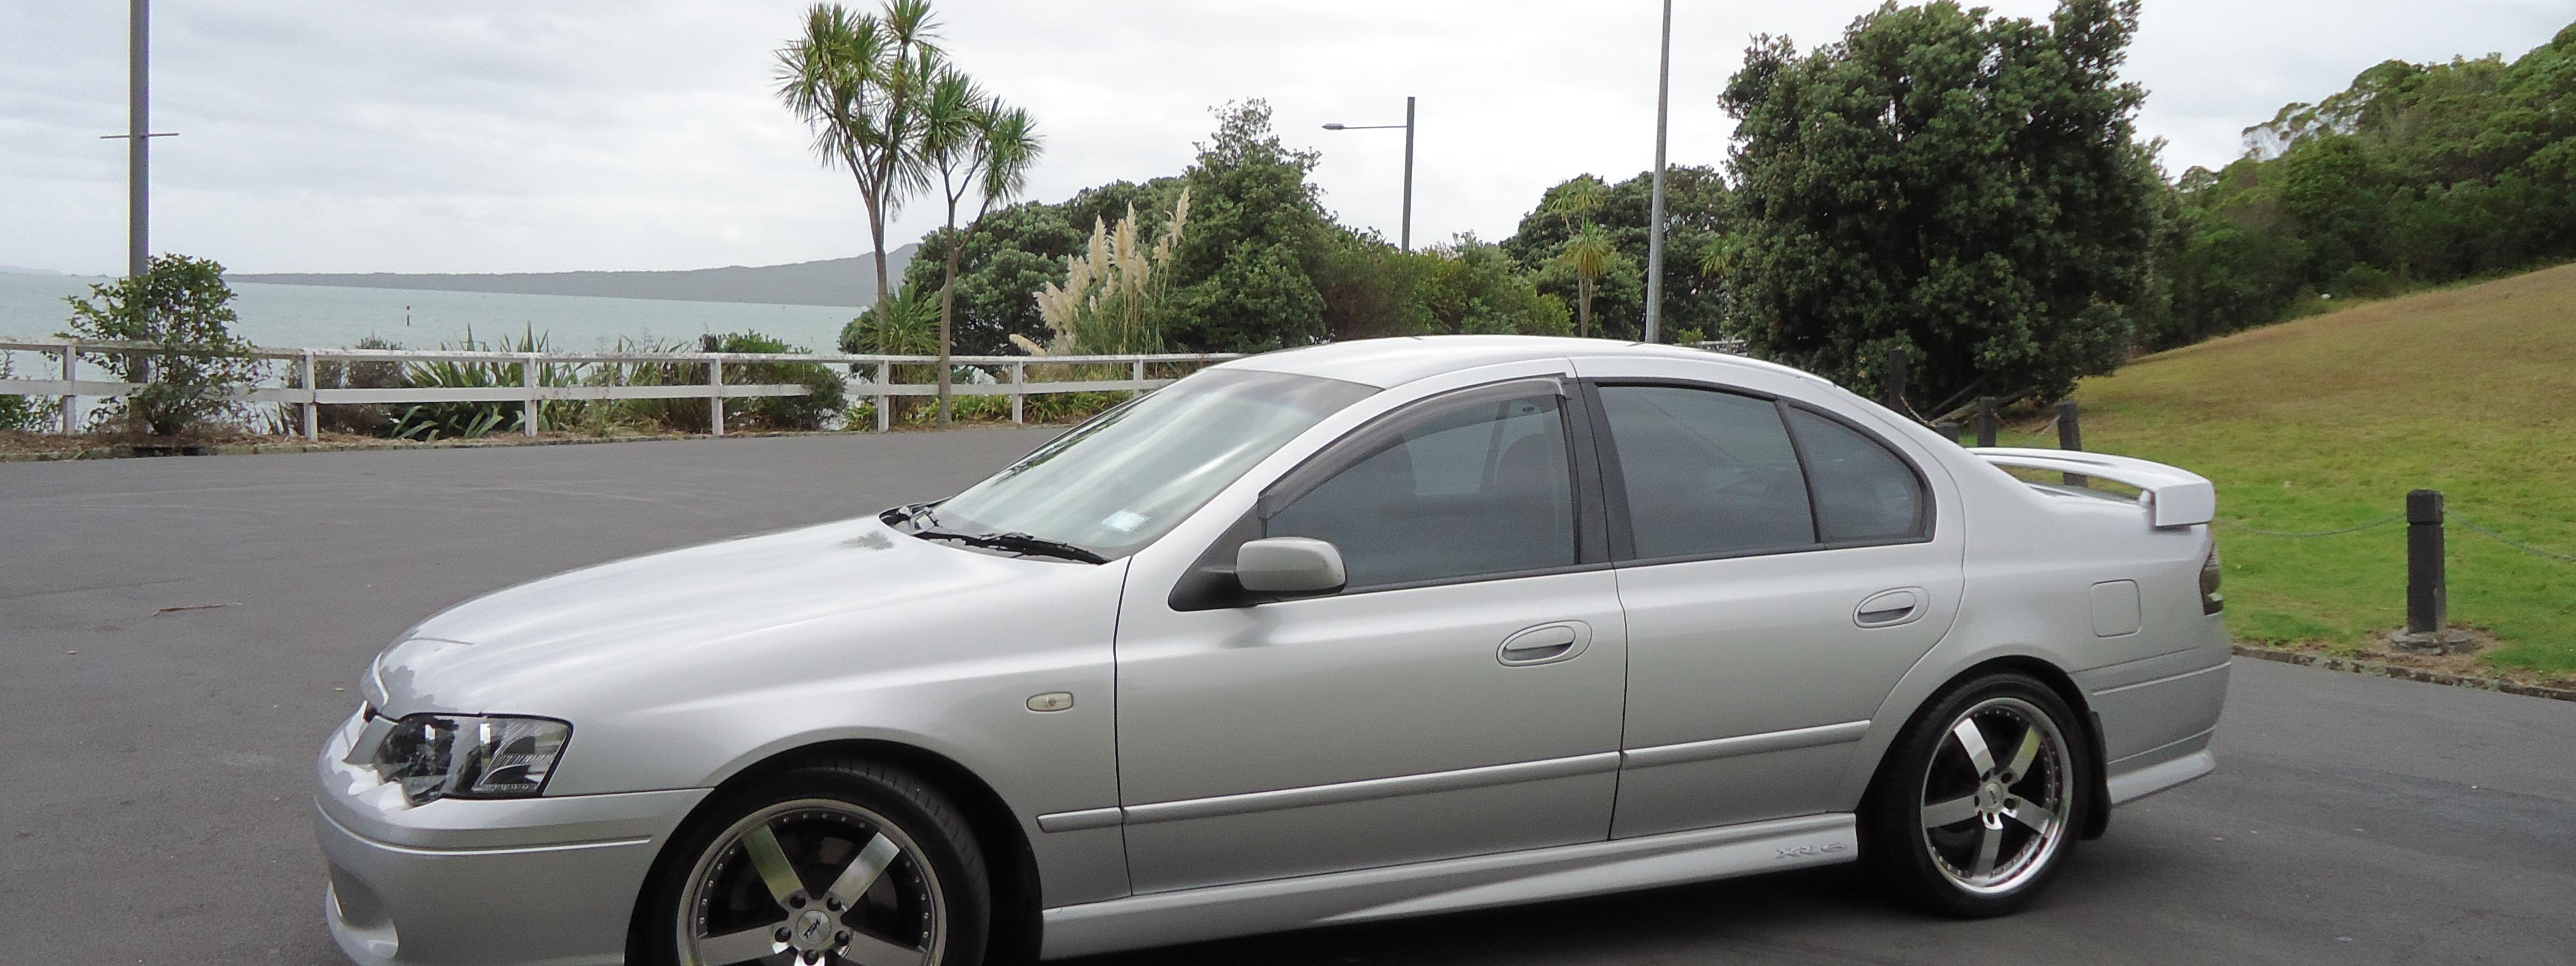 xr6lva 2004 Ford Falcon